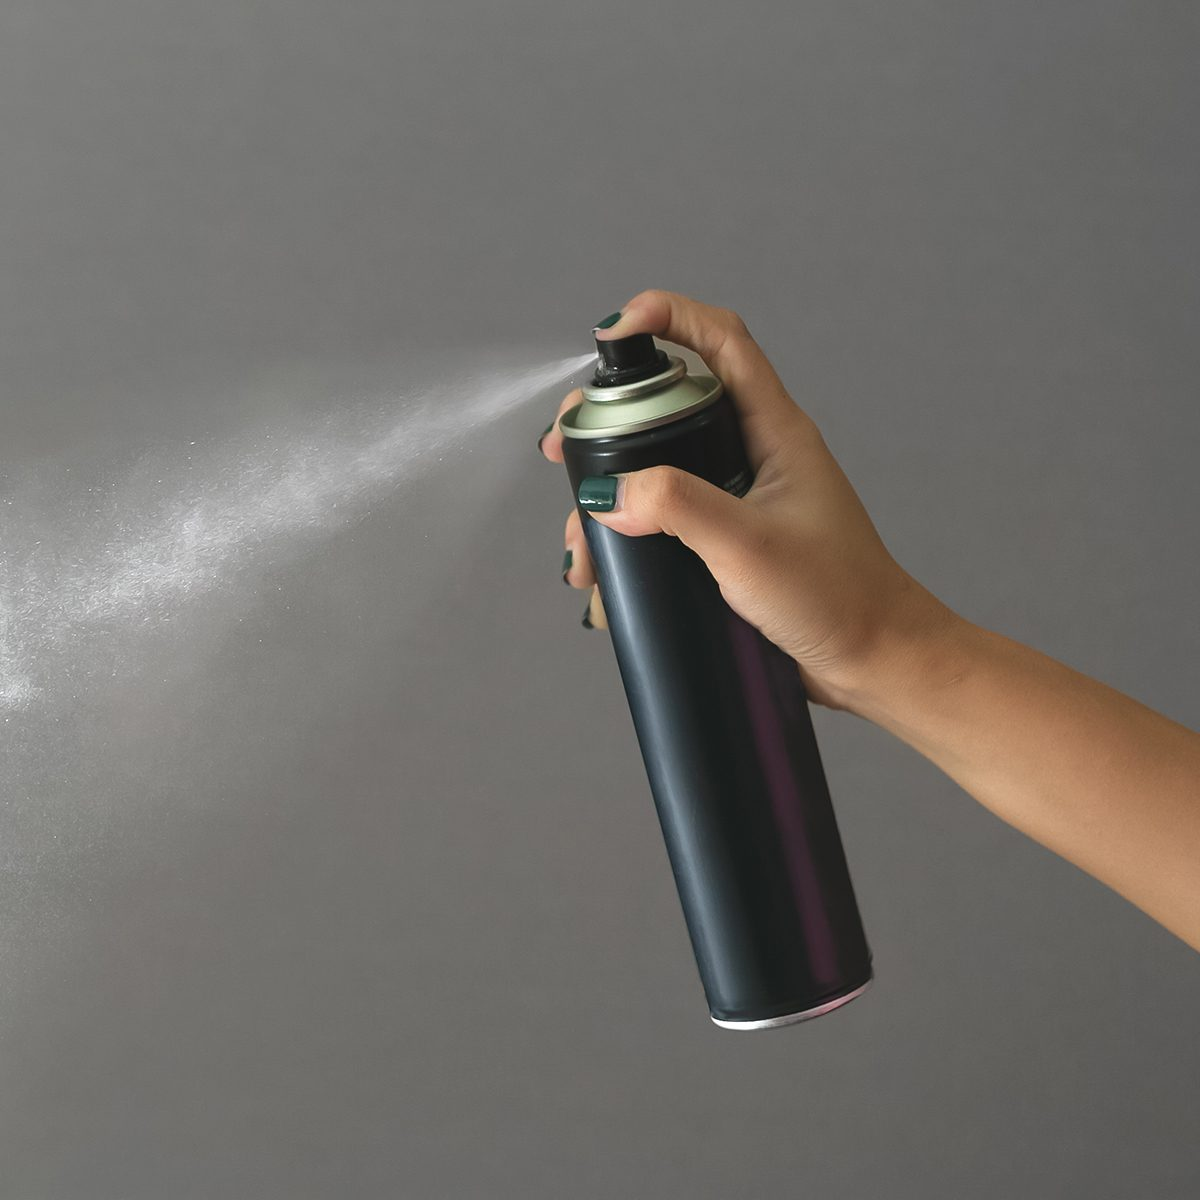 Cropped Hand Of Woman Spraying Against Gray Background